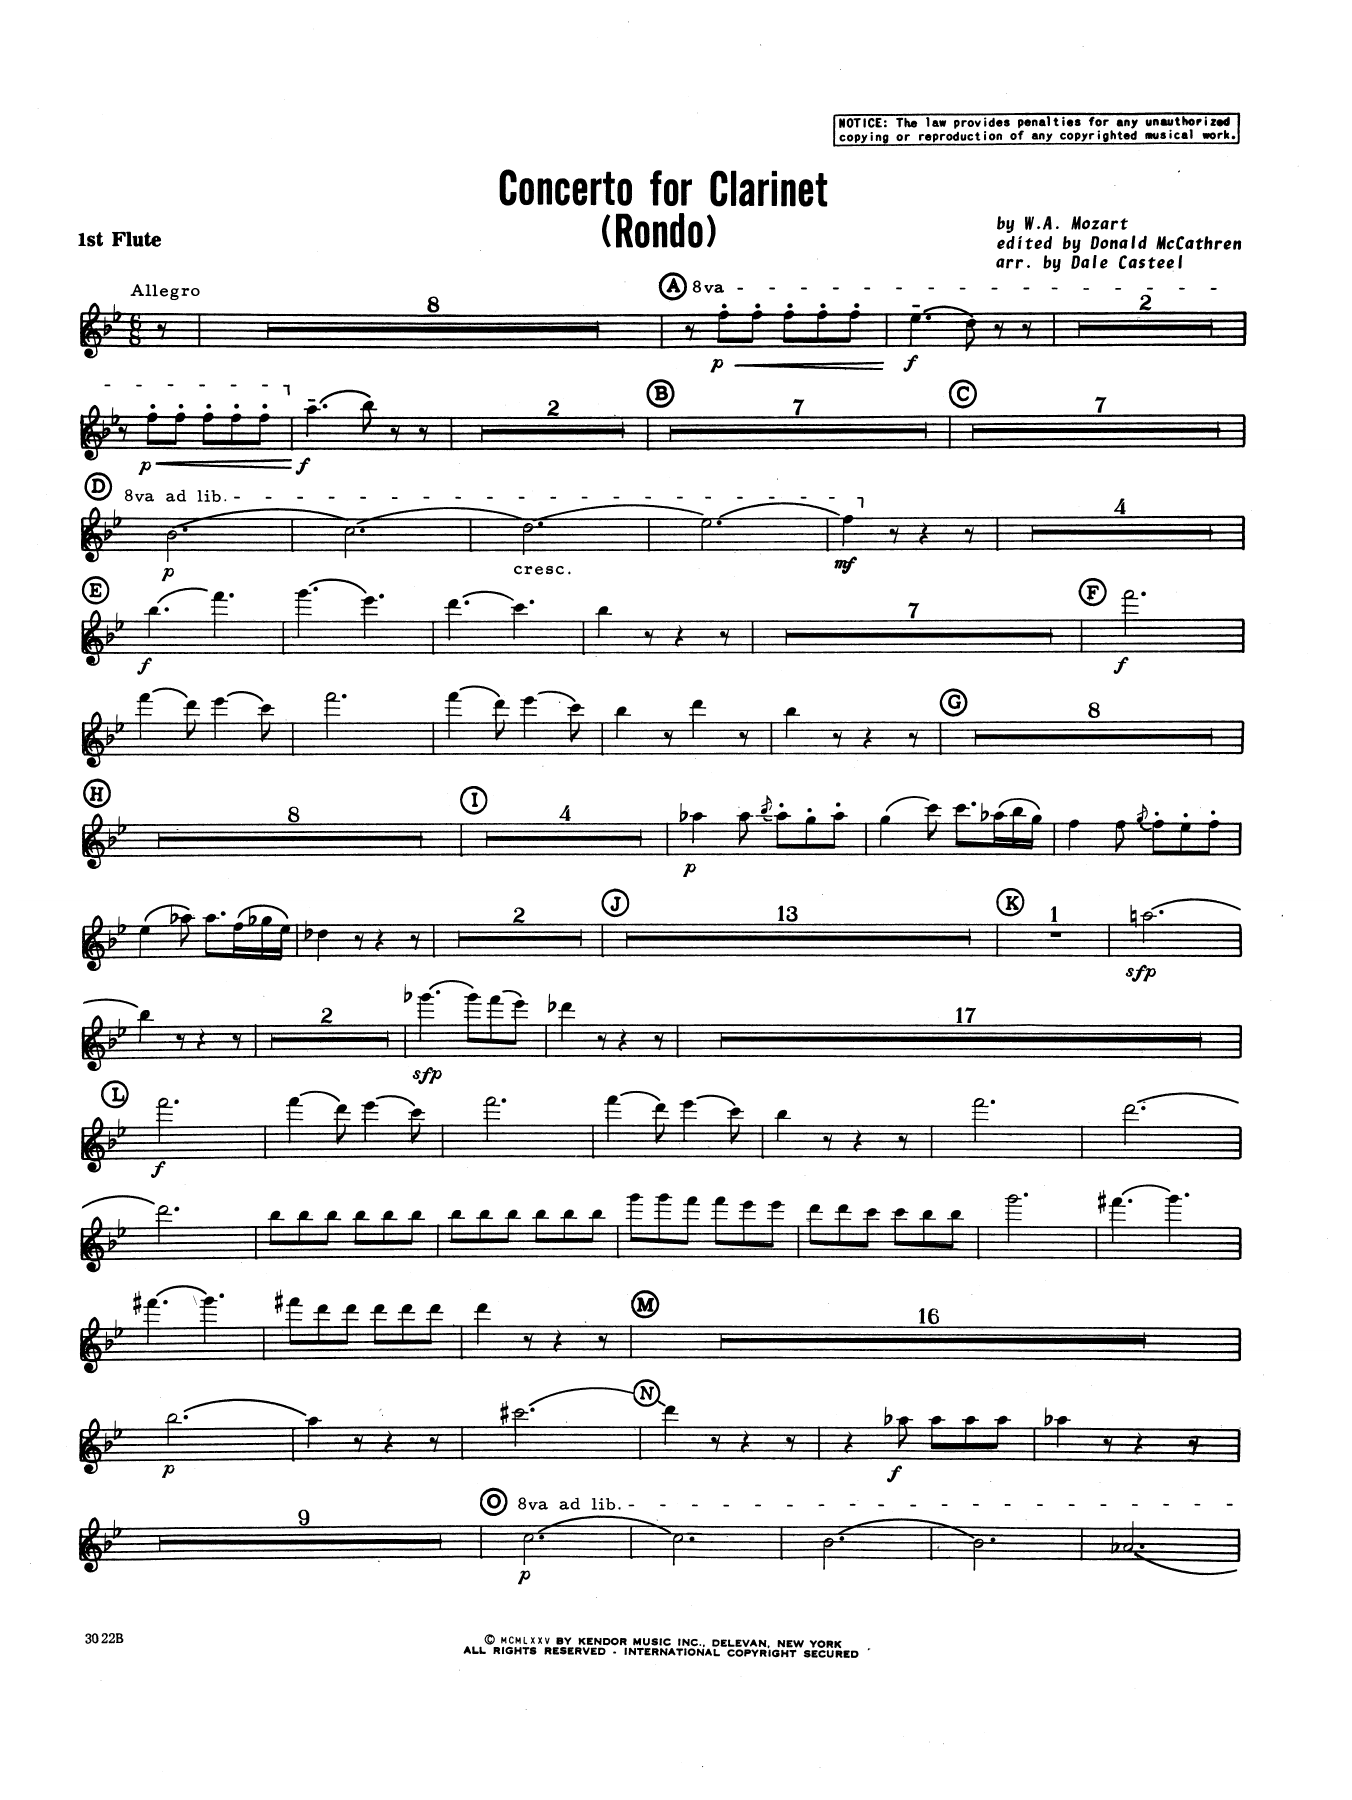 Donald McCathren and Dale Casteel Concerto For Clarinet - Rondo (3rd Movement) - K.622 - 1st Flute sheet music notes printable PDF score